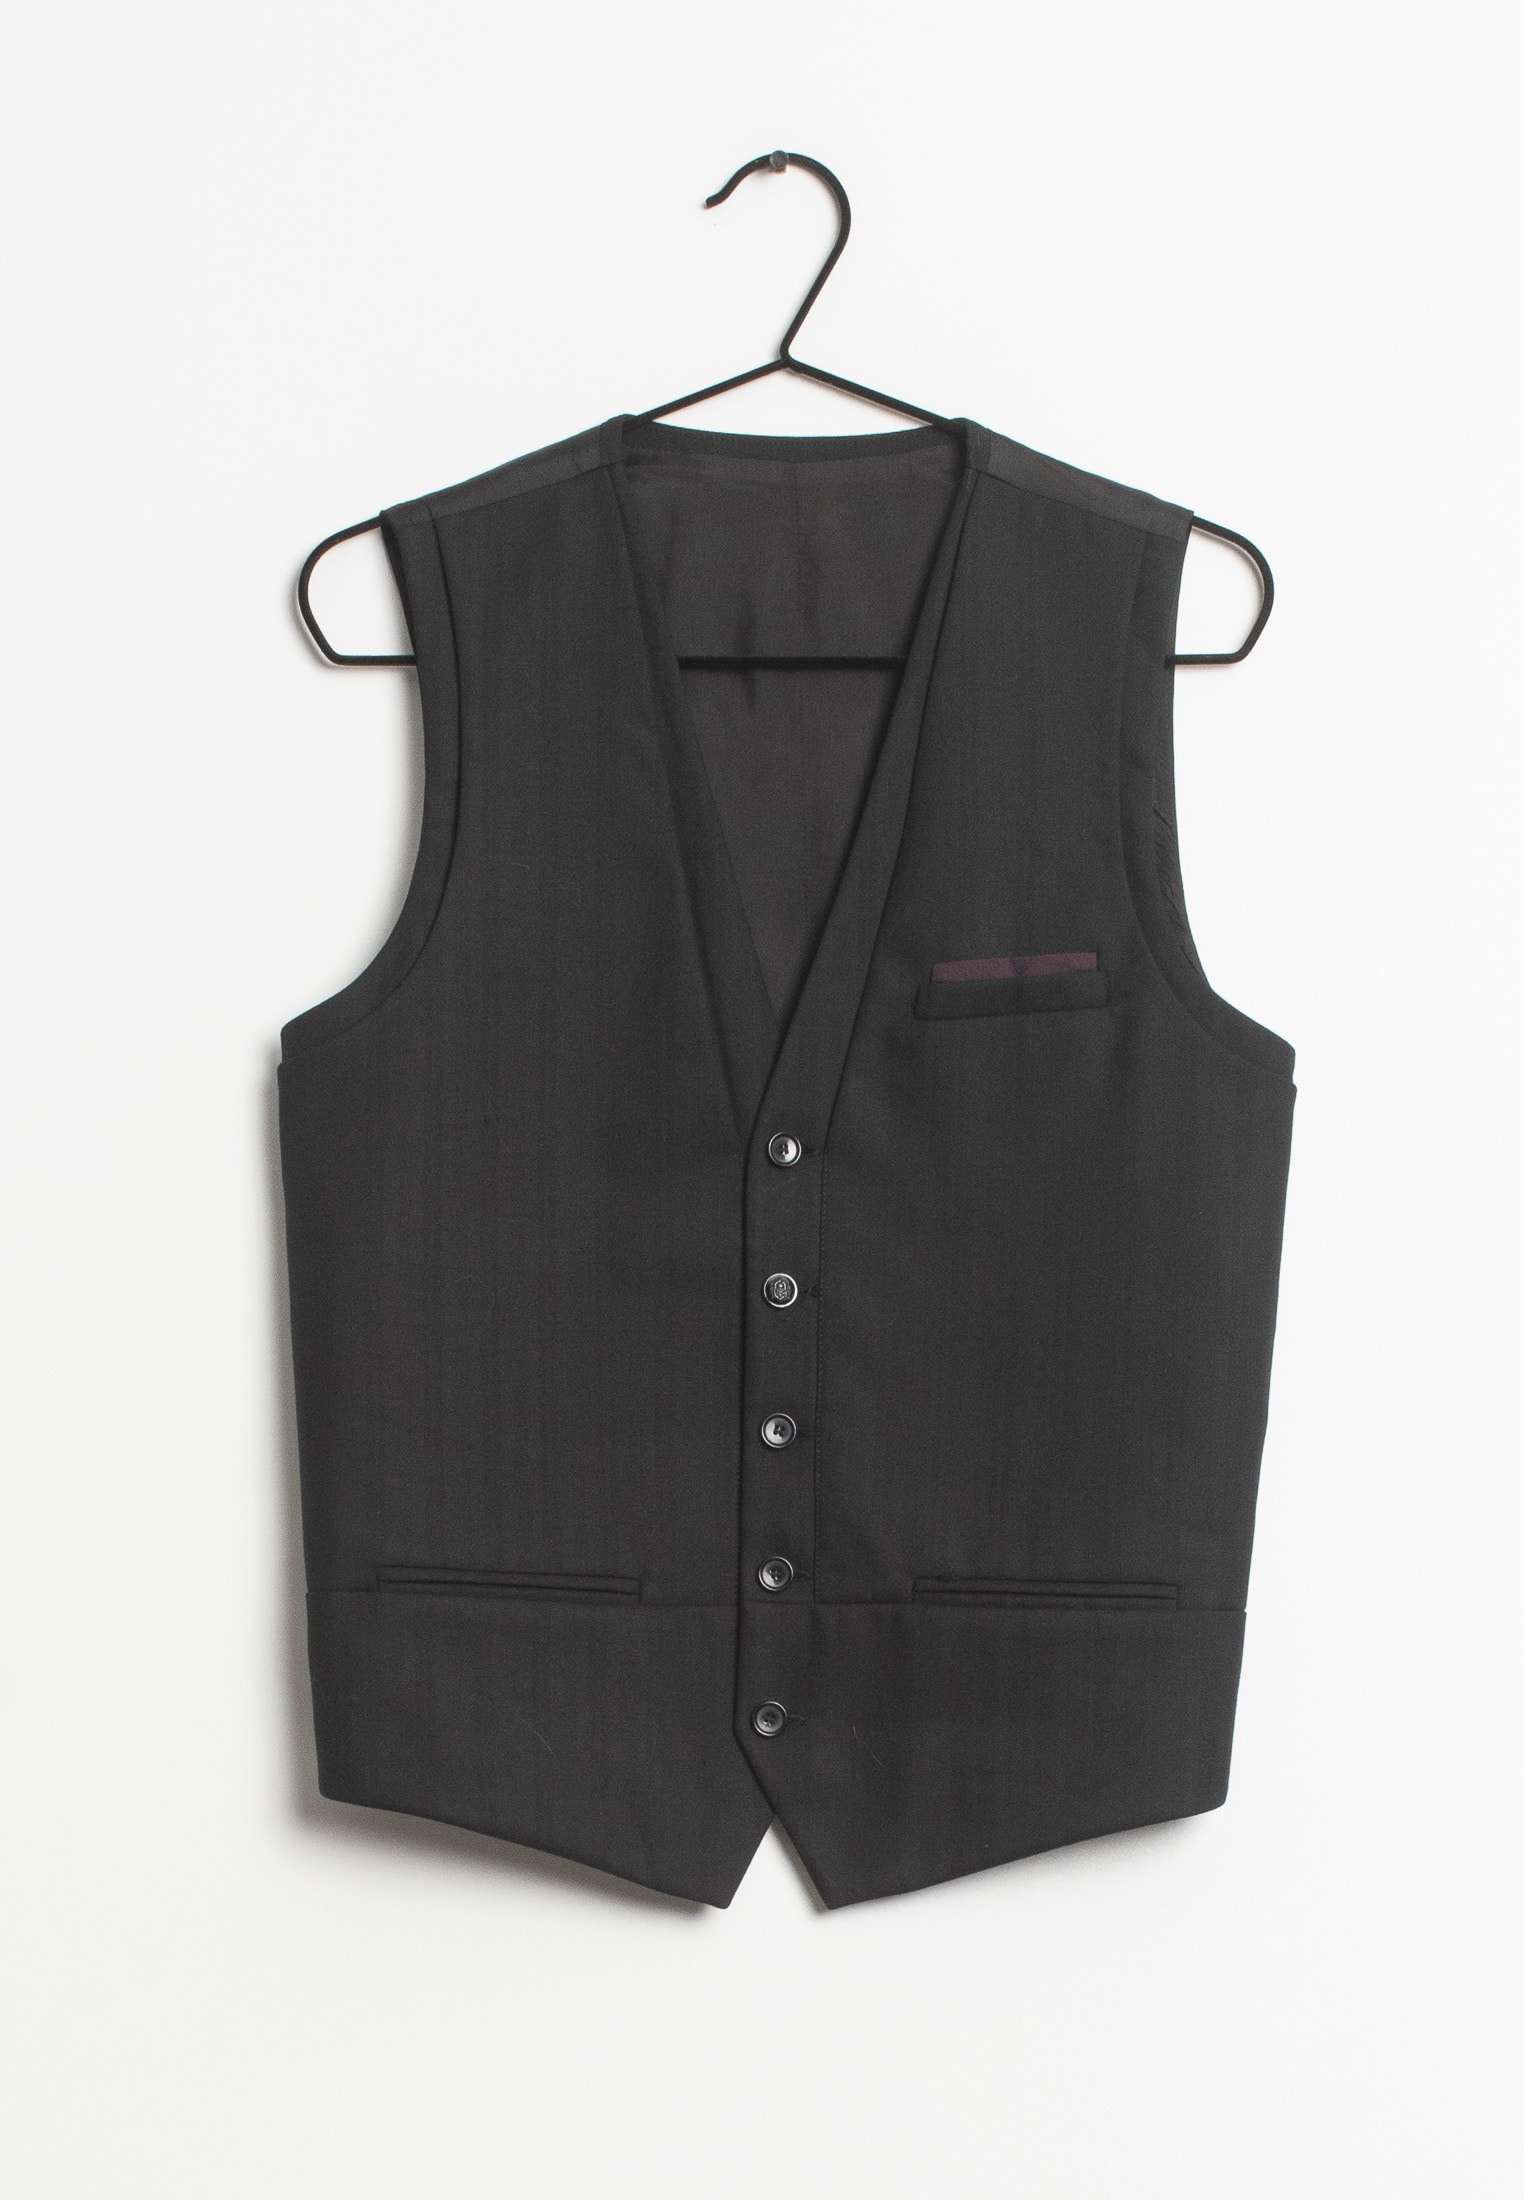 The Kooples vest, sort, 46